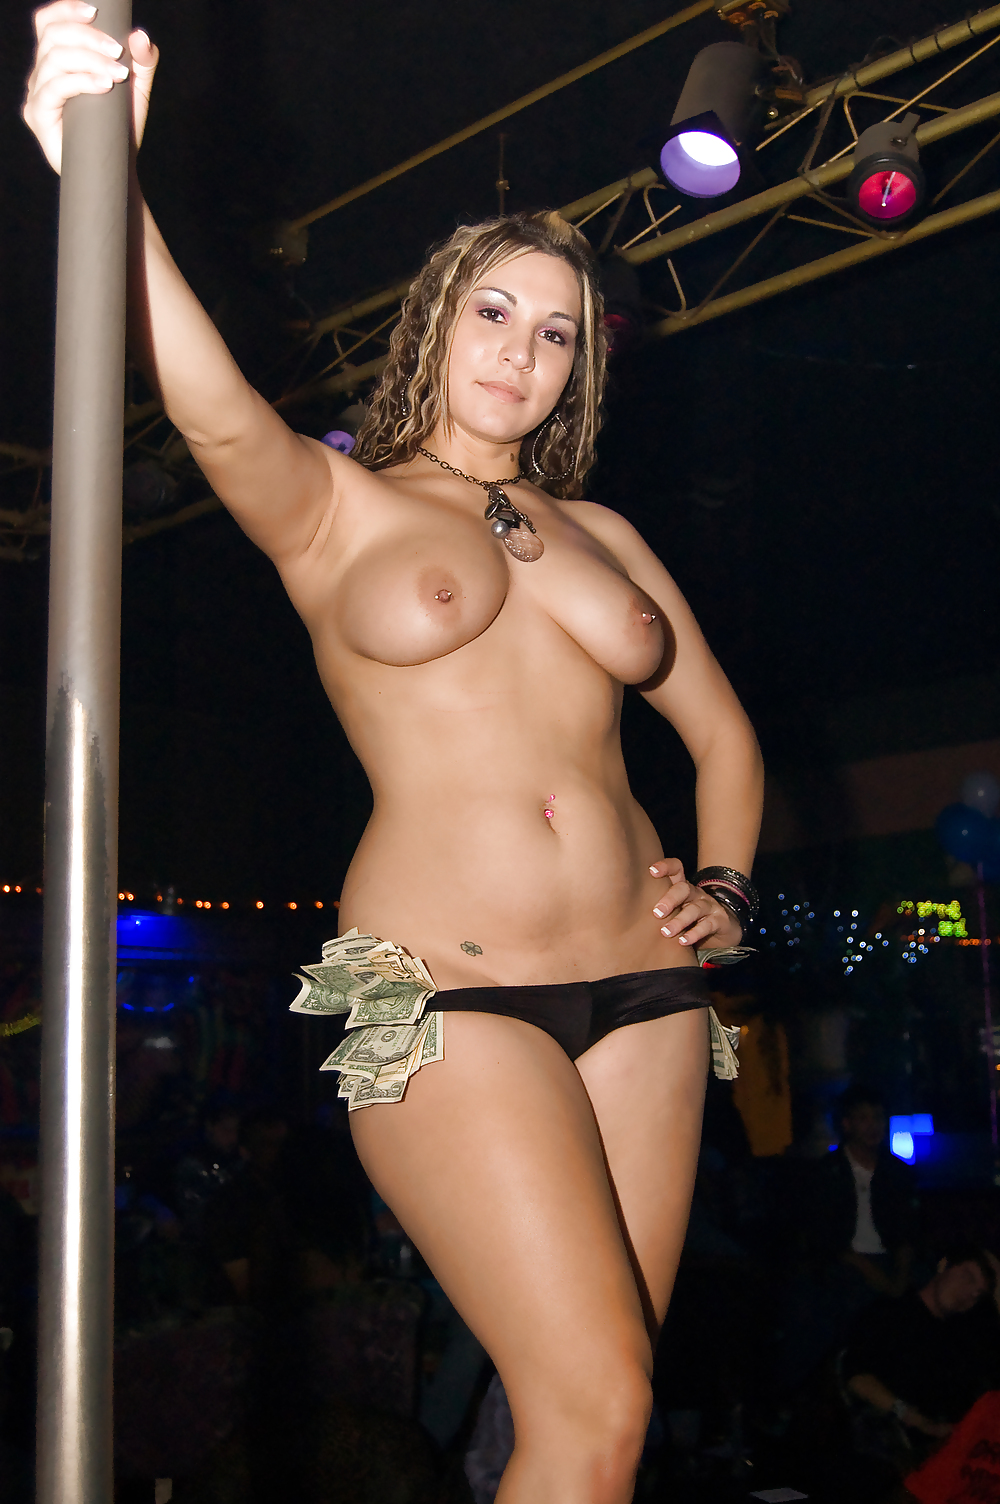 Hot stripper fucking